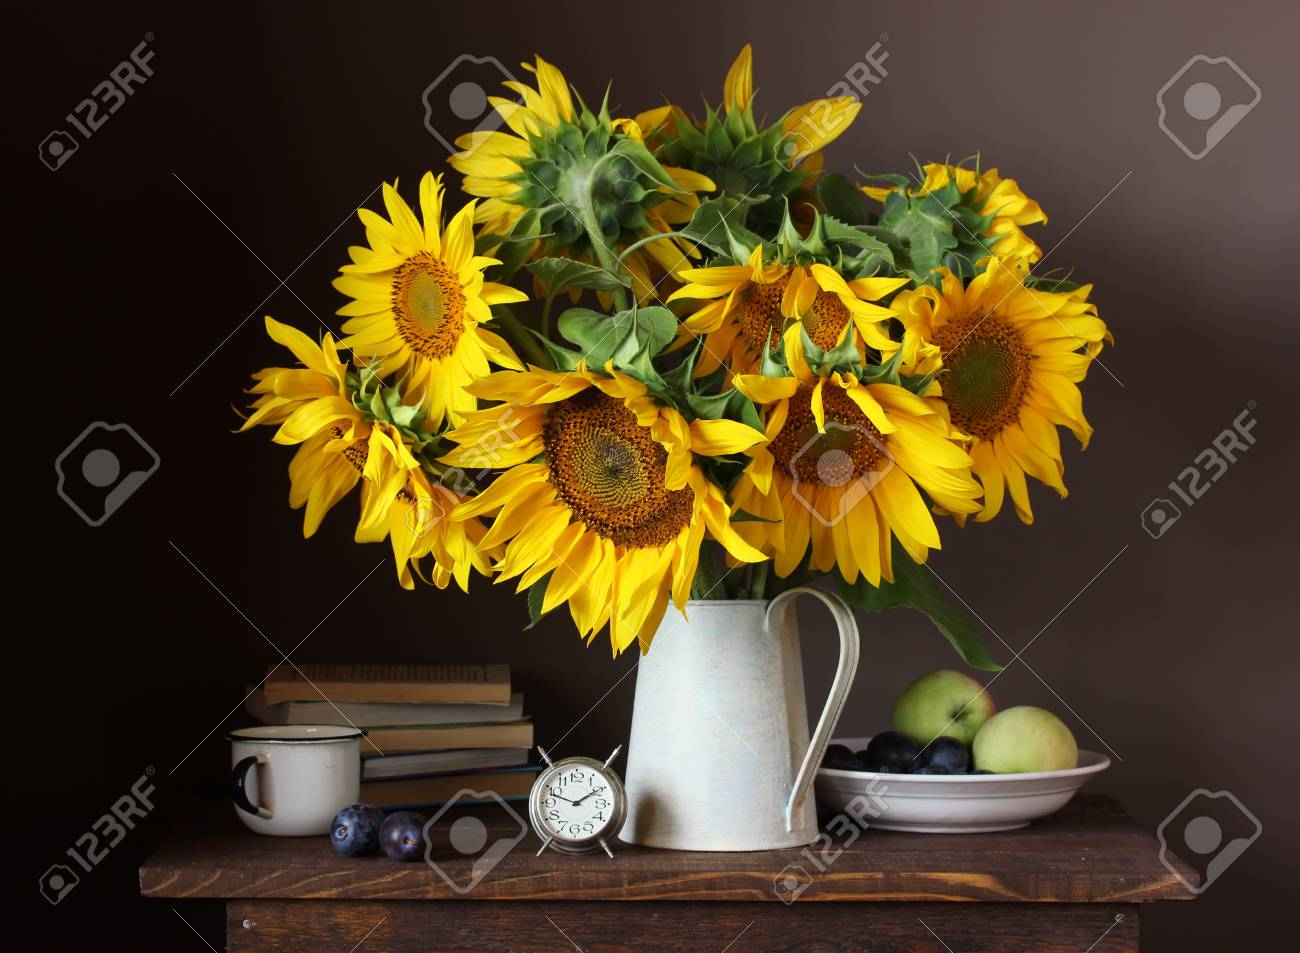 Still Life With A Bouquet Of Yellow Sunflowers And Fruits Flowers Stock Photo Picture And Royalty Free Image Image 110026333